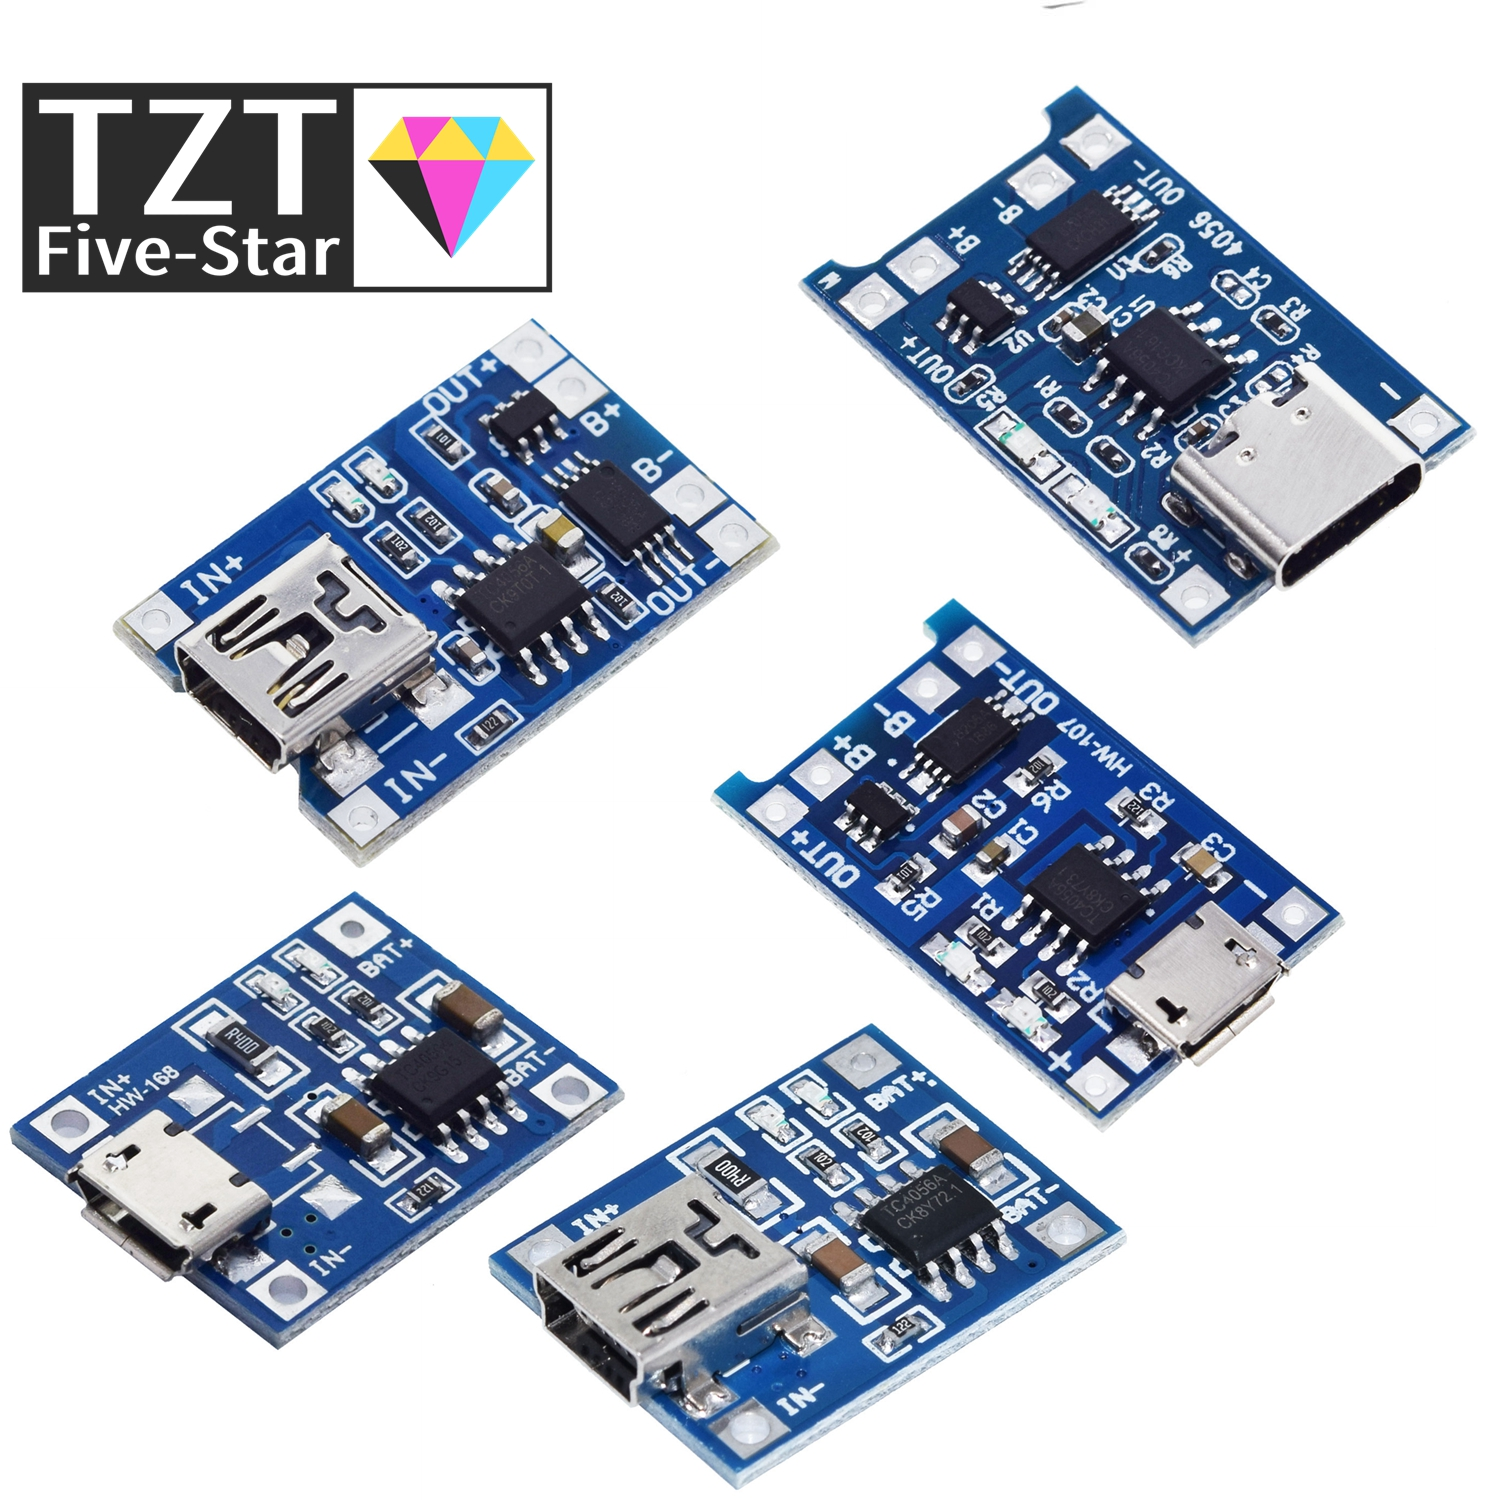 5pcs Micro/Type-c USB 5V 1A 18650 TP4056 Lithium Battery Charger Module Charging Board With Protection Dual Functions 1A Li-ion 1